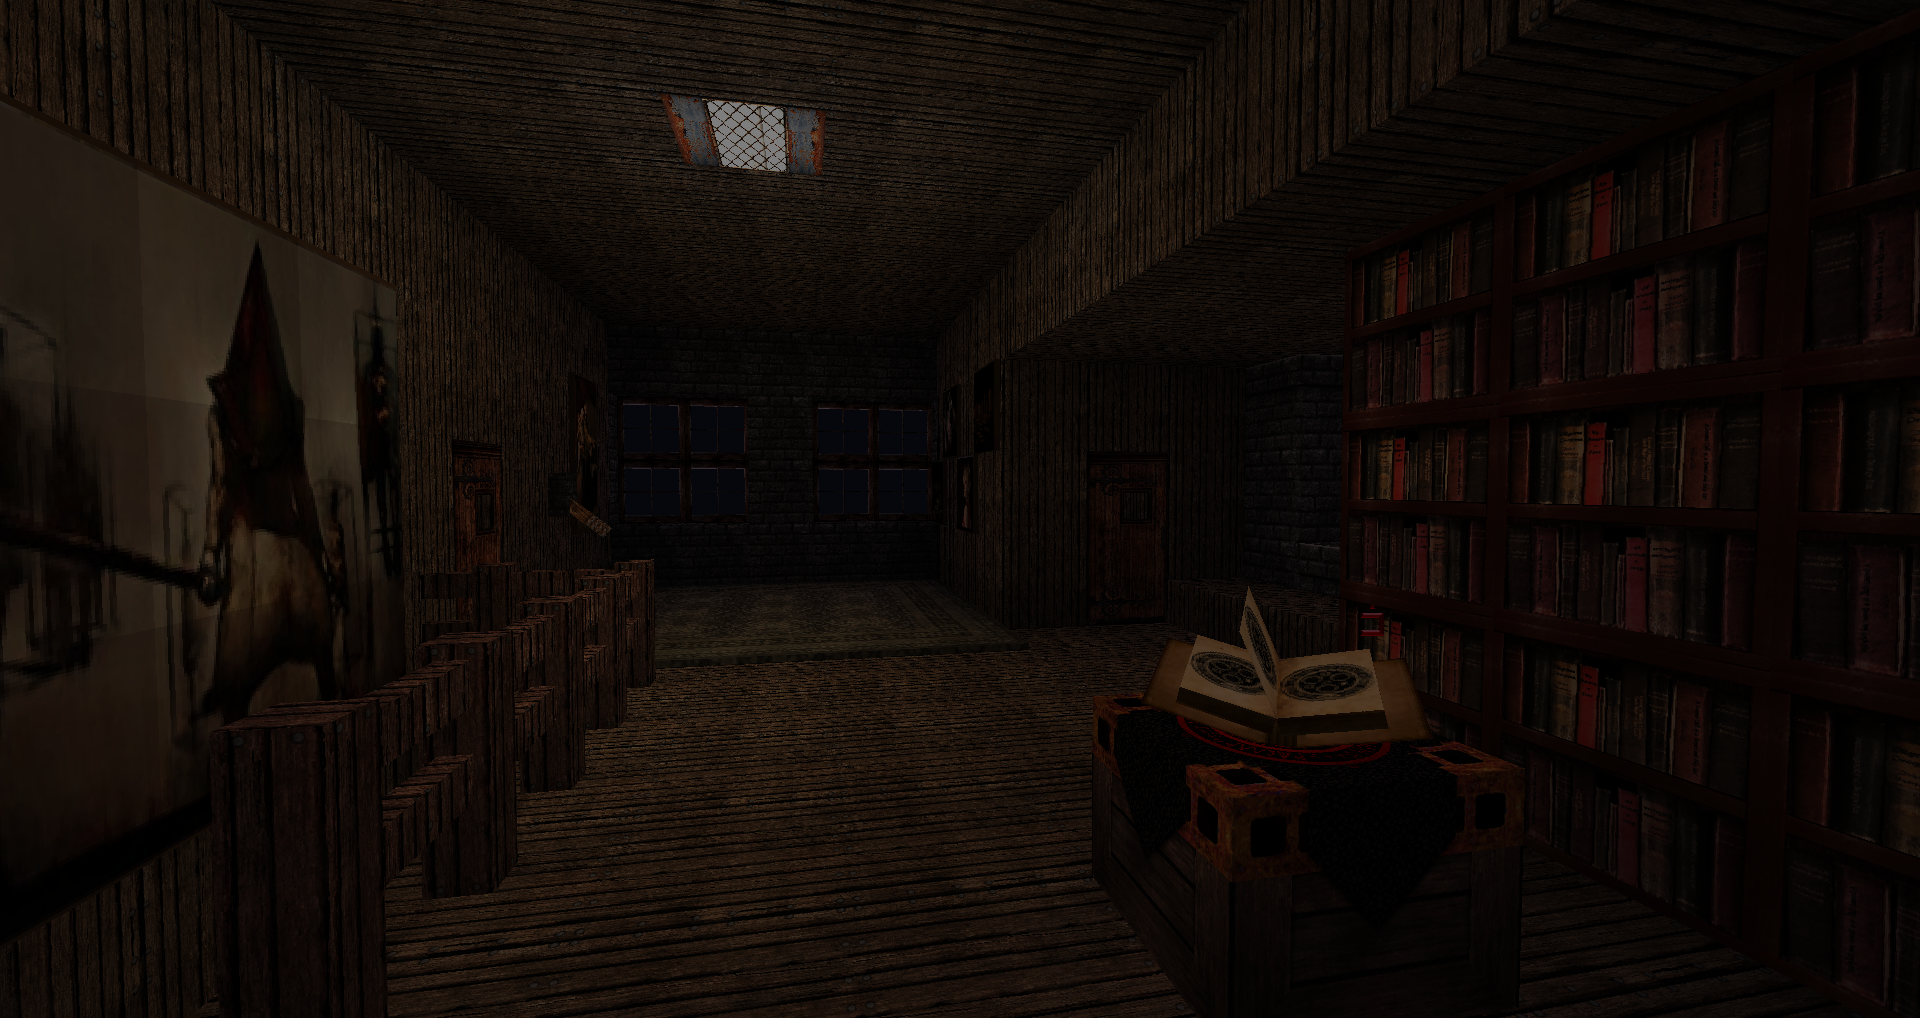 Silent Hill Haunted House Minecraft 4 By Red Xuchilbara On